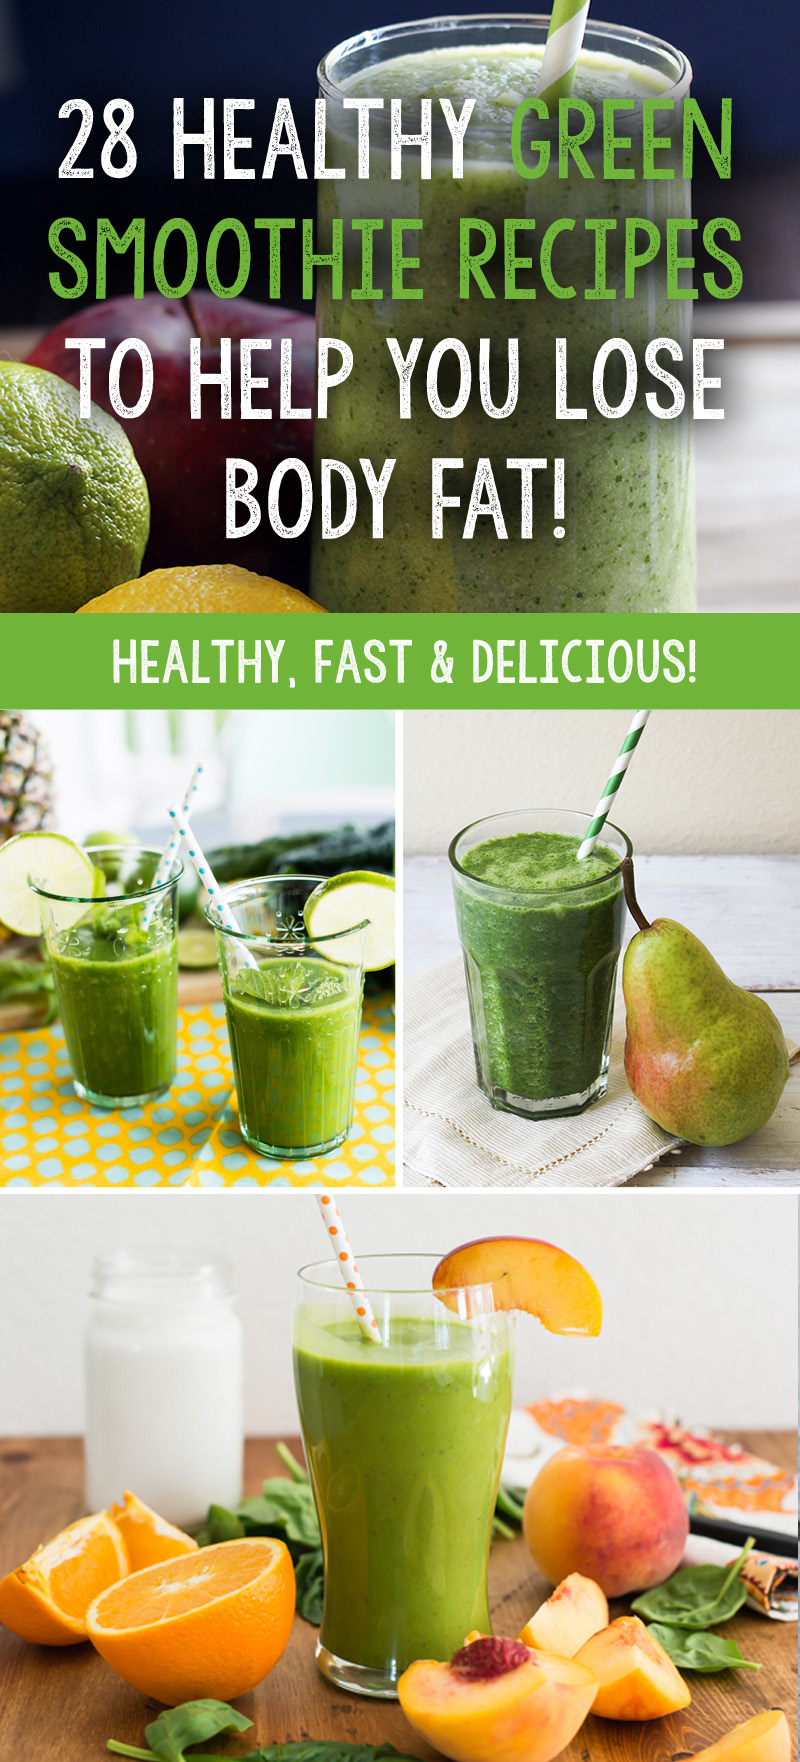 28-Healthy-Green-Smoothie-Recipes